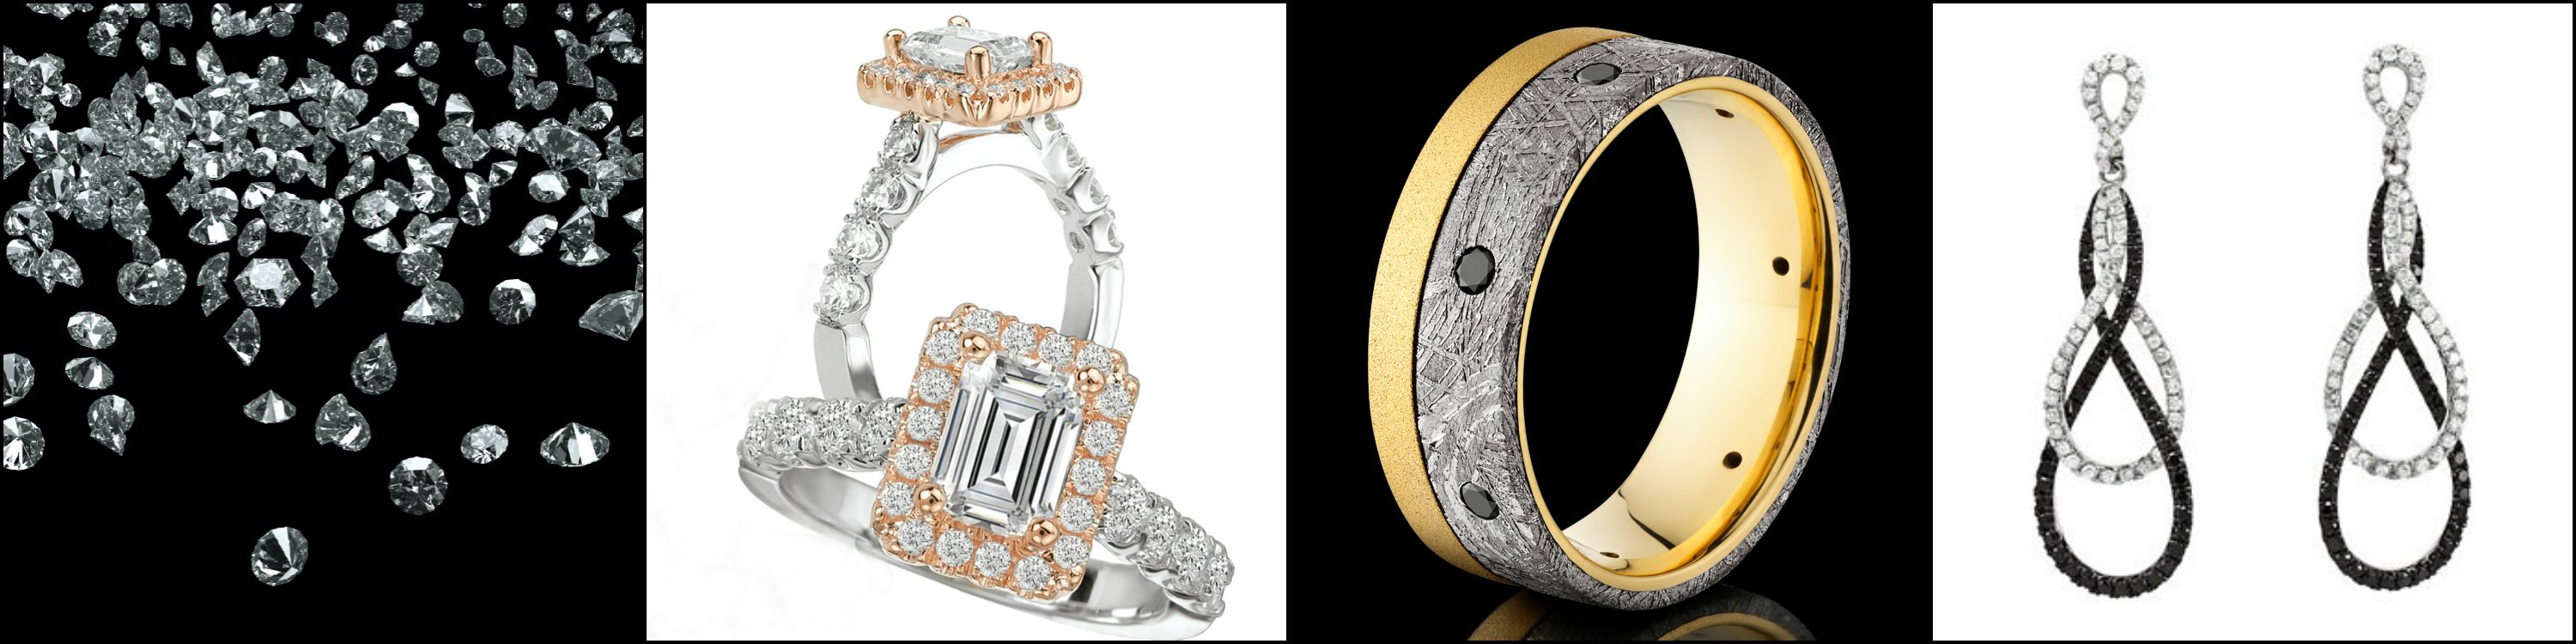 Shop loose diamonds, engagement rings, wedding bands and fine jewelry